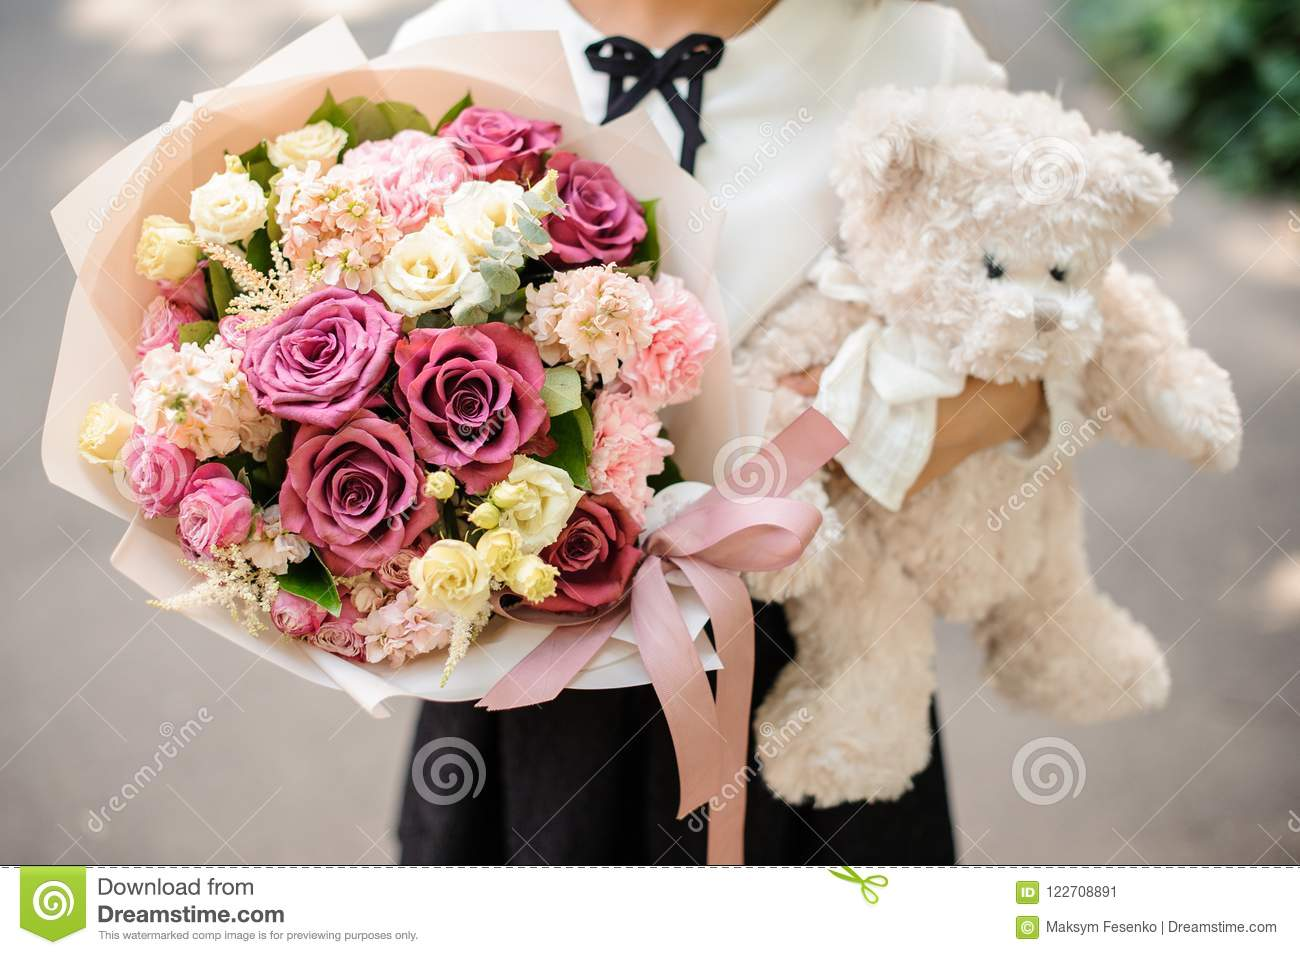 Download School Girl Dressed In School Uniform Holding A Bright Colorful  Festive Bouquet And Teddy Bear